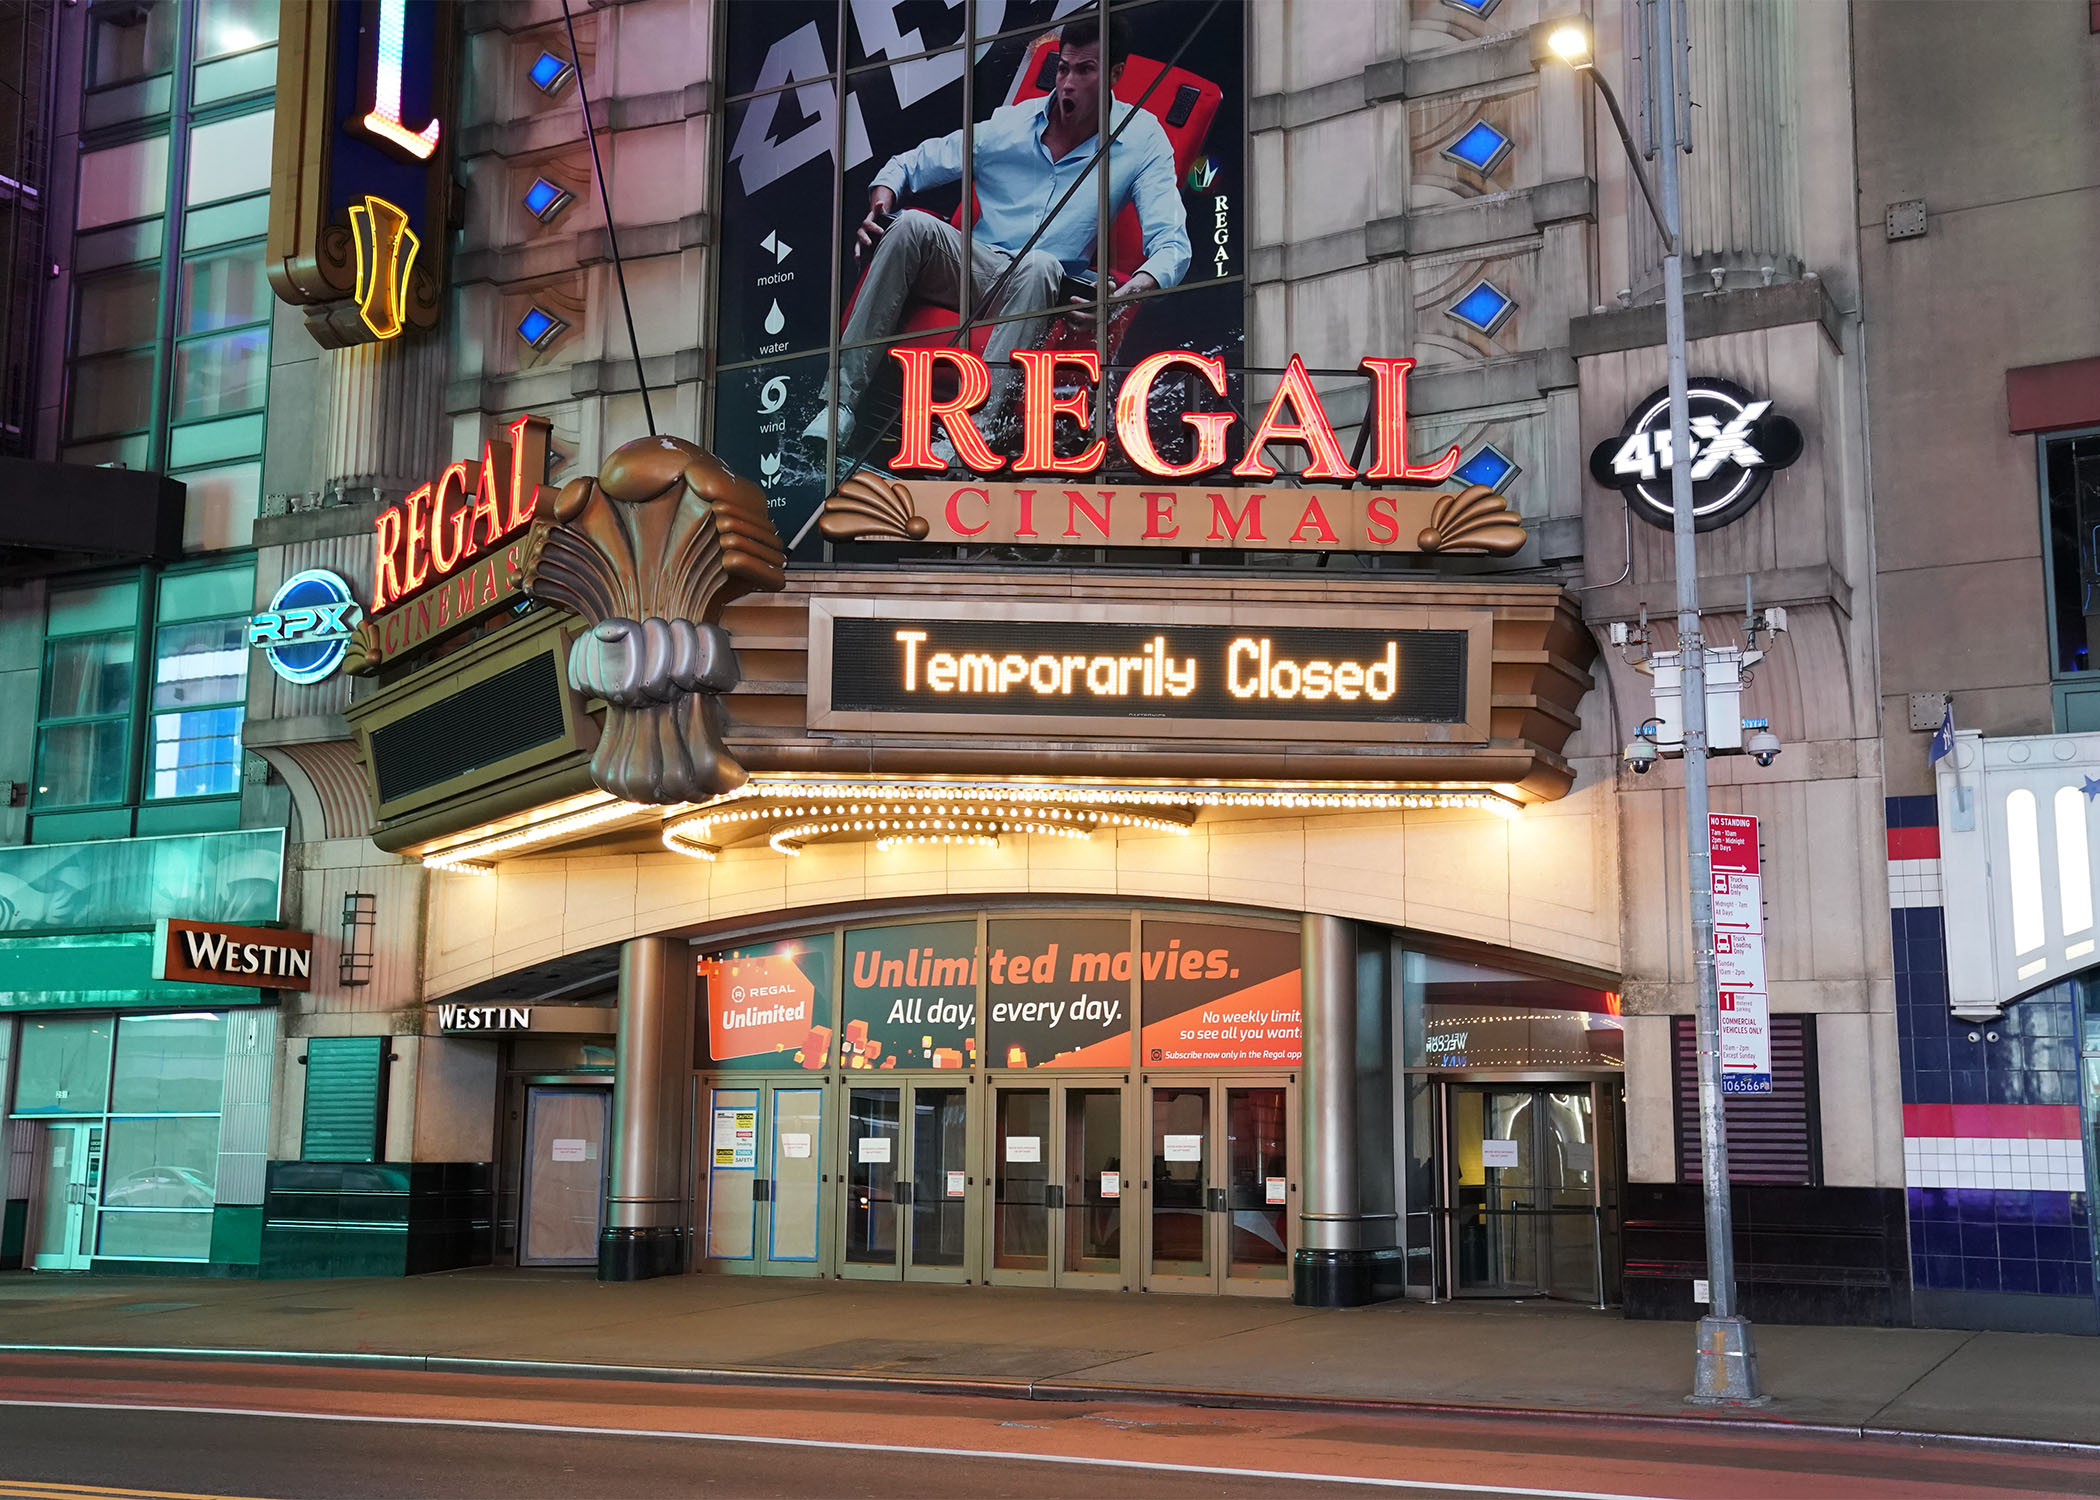 Movie theaters could be next on Gov. Cuomo's reopening list